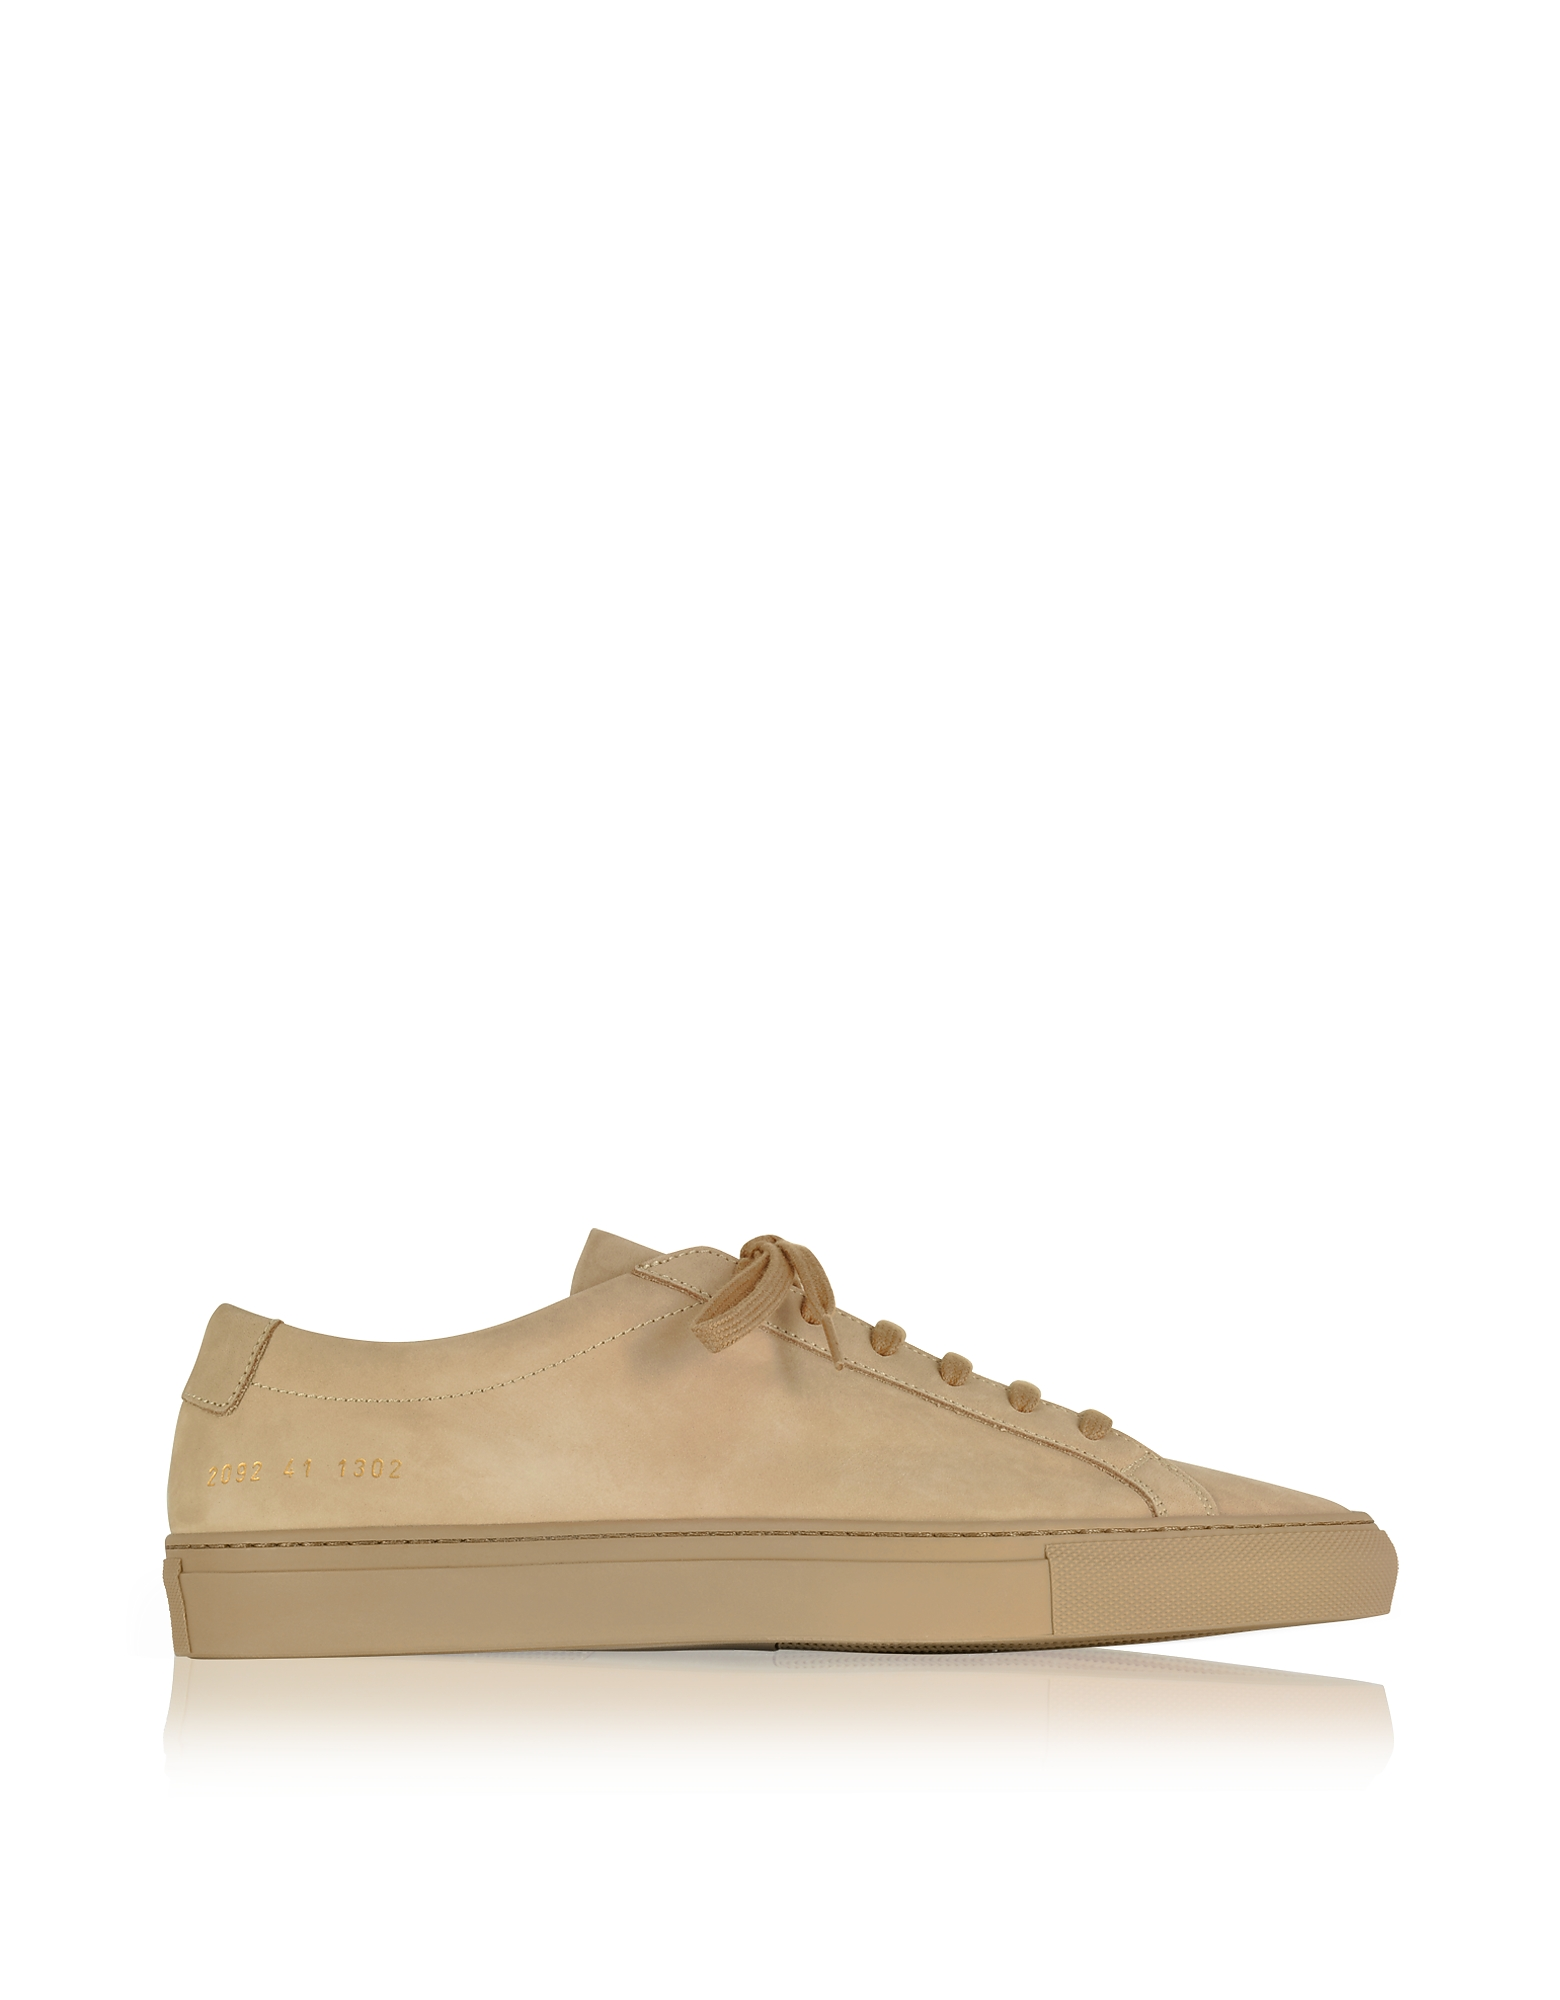 Common Projects Shoes, Tan Nubuck Original Achilles Low Men's Sneakers